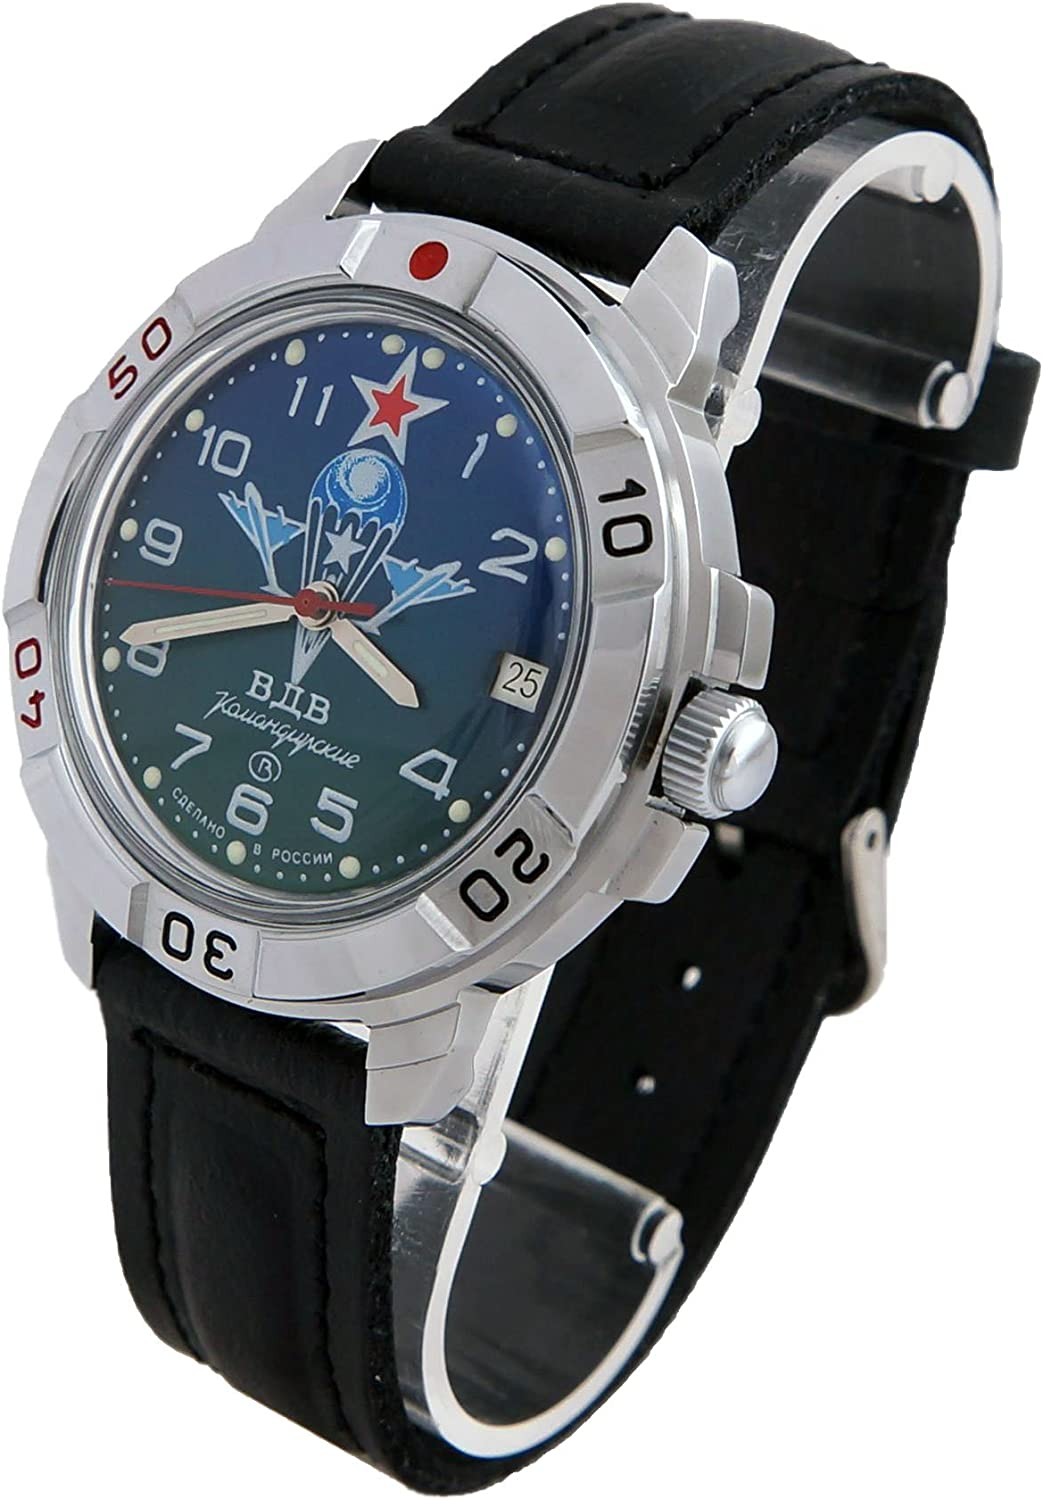 Vostok Komandirskie 431818 2414A Military Special Forces Russian Watch Green VDV Paratrooper